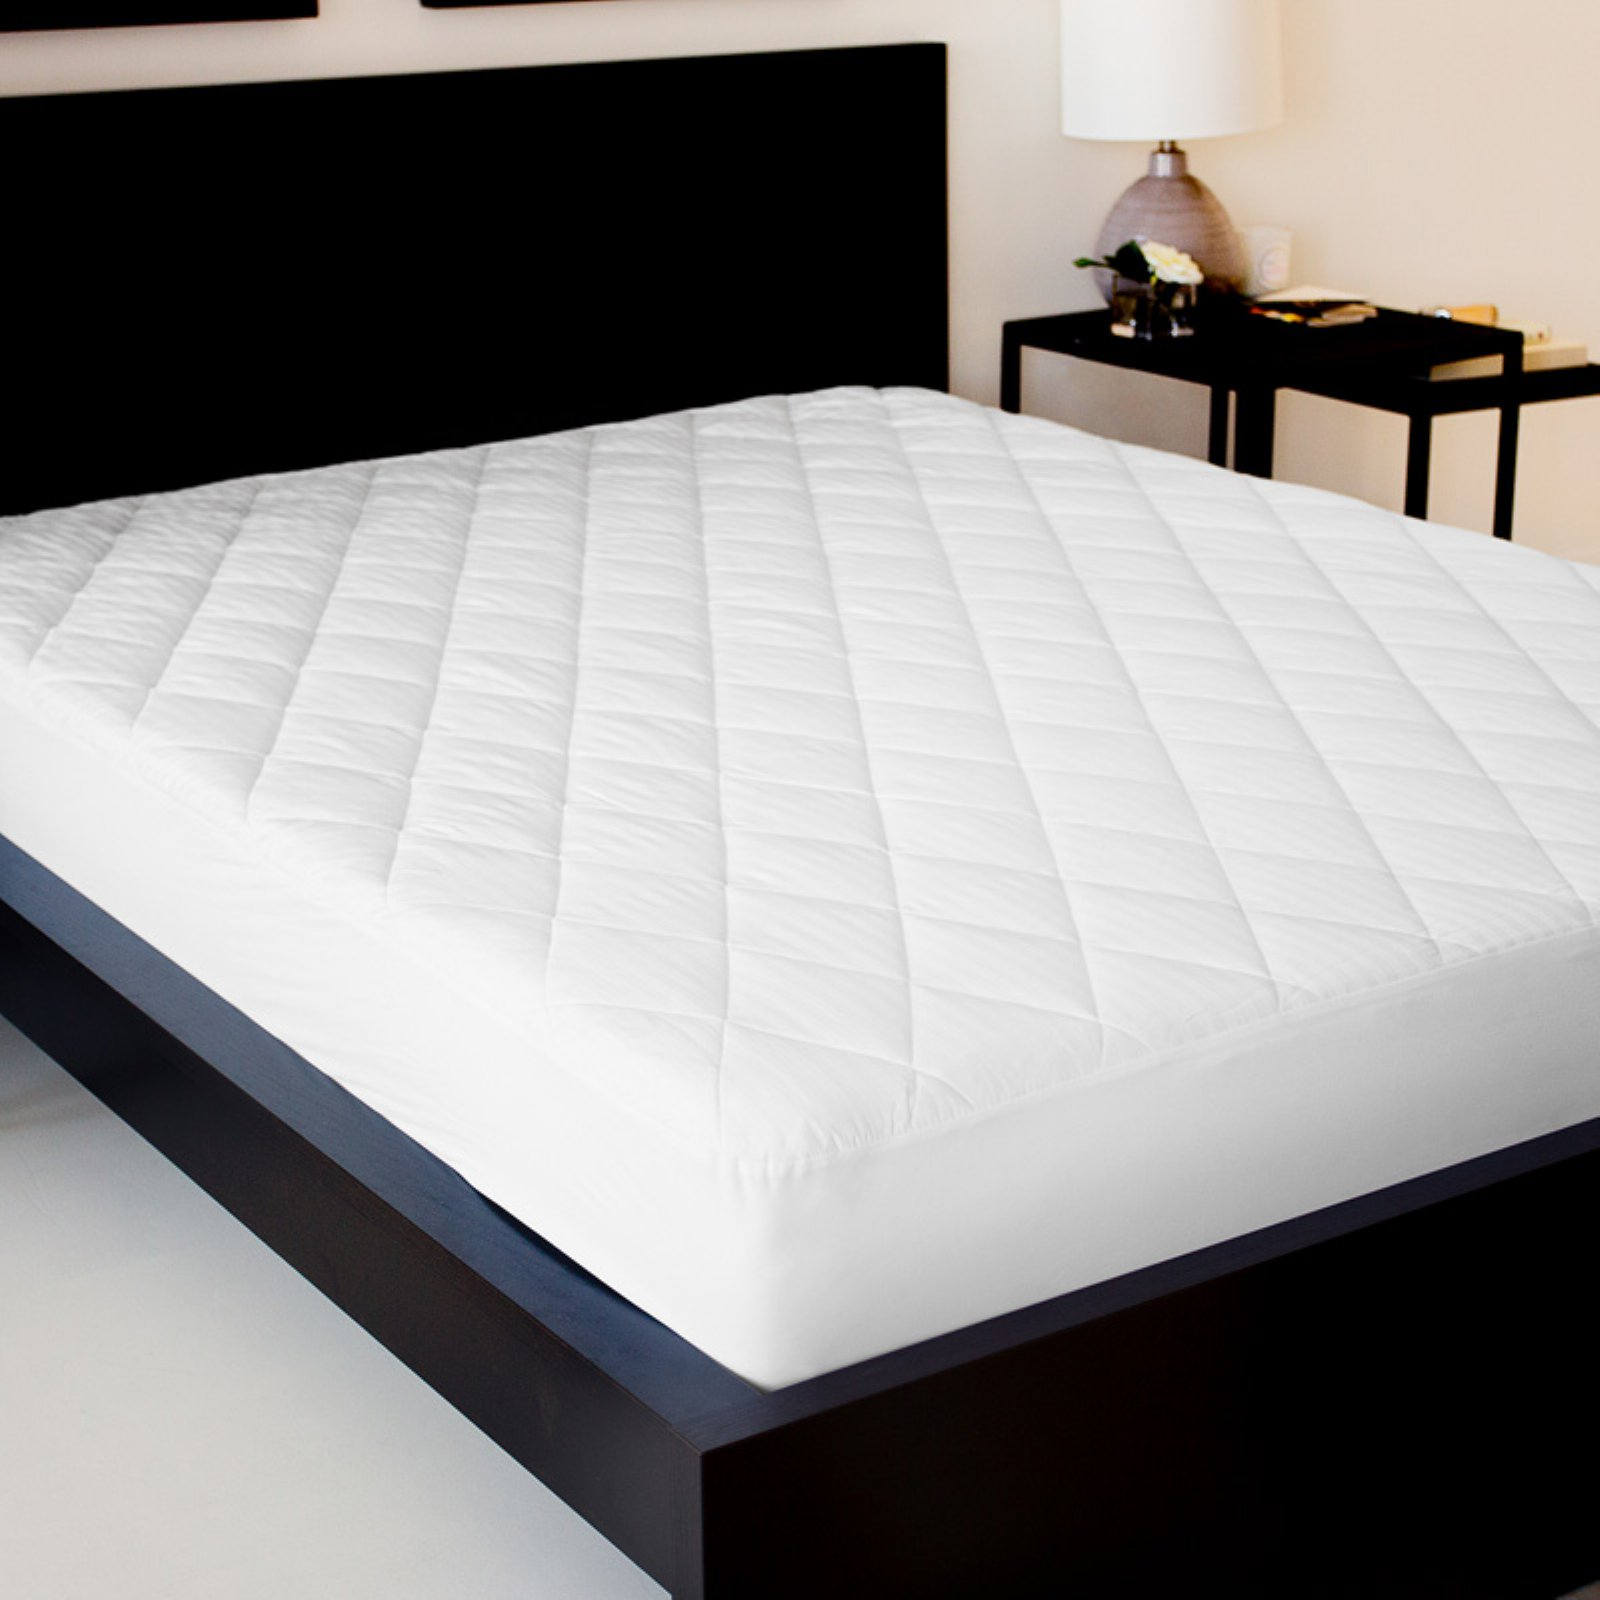 Malouf Sleep Tite Mattress Protector Sleep Tite Waterproof Mattress Pad In 2019 Products Mattress